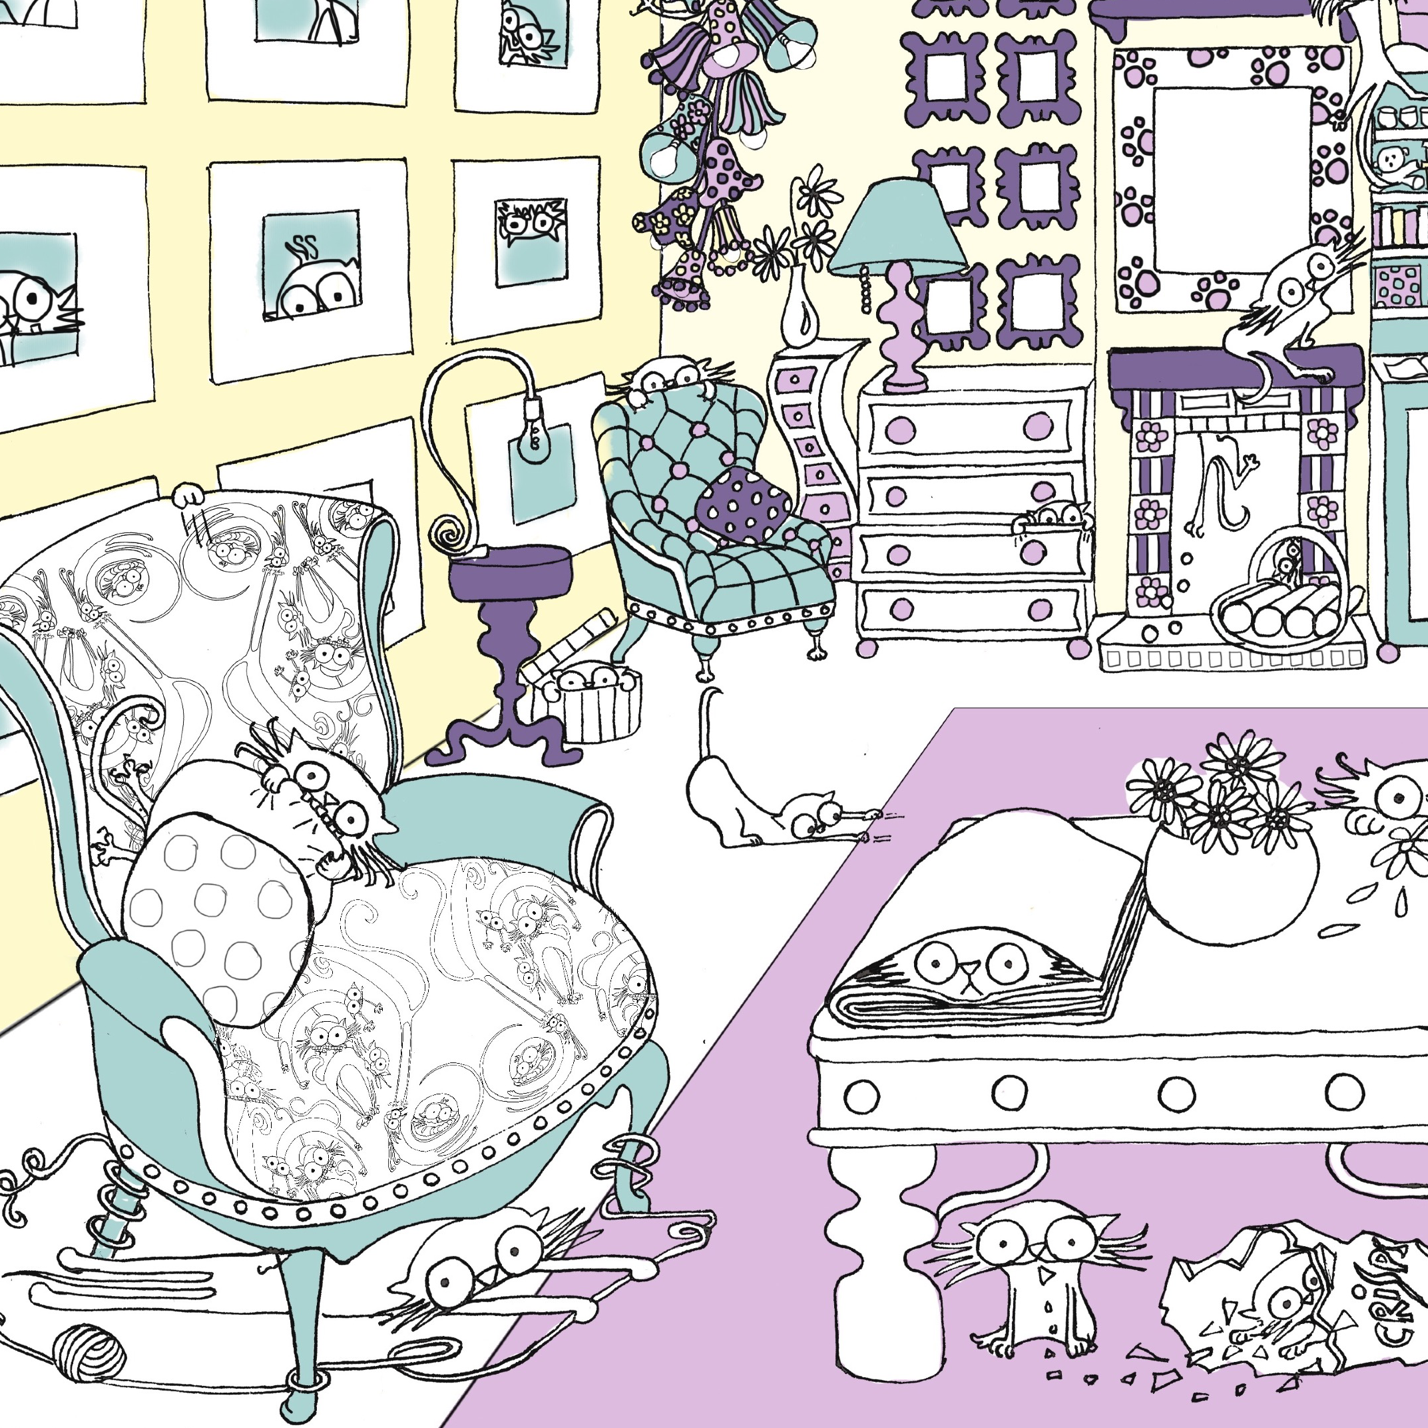 CAT DONT CARE | ADULT COLOURING BOOK BY NATALIE PALMER SUTTON 2.png